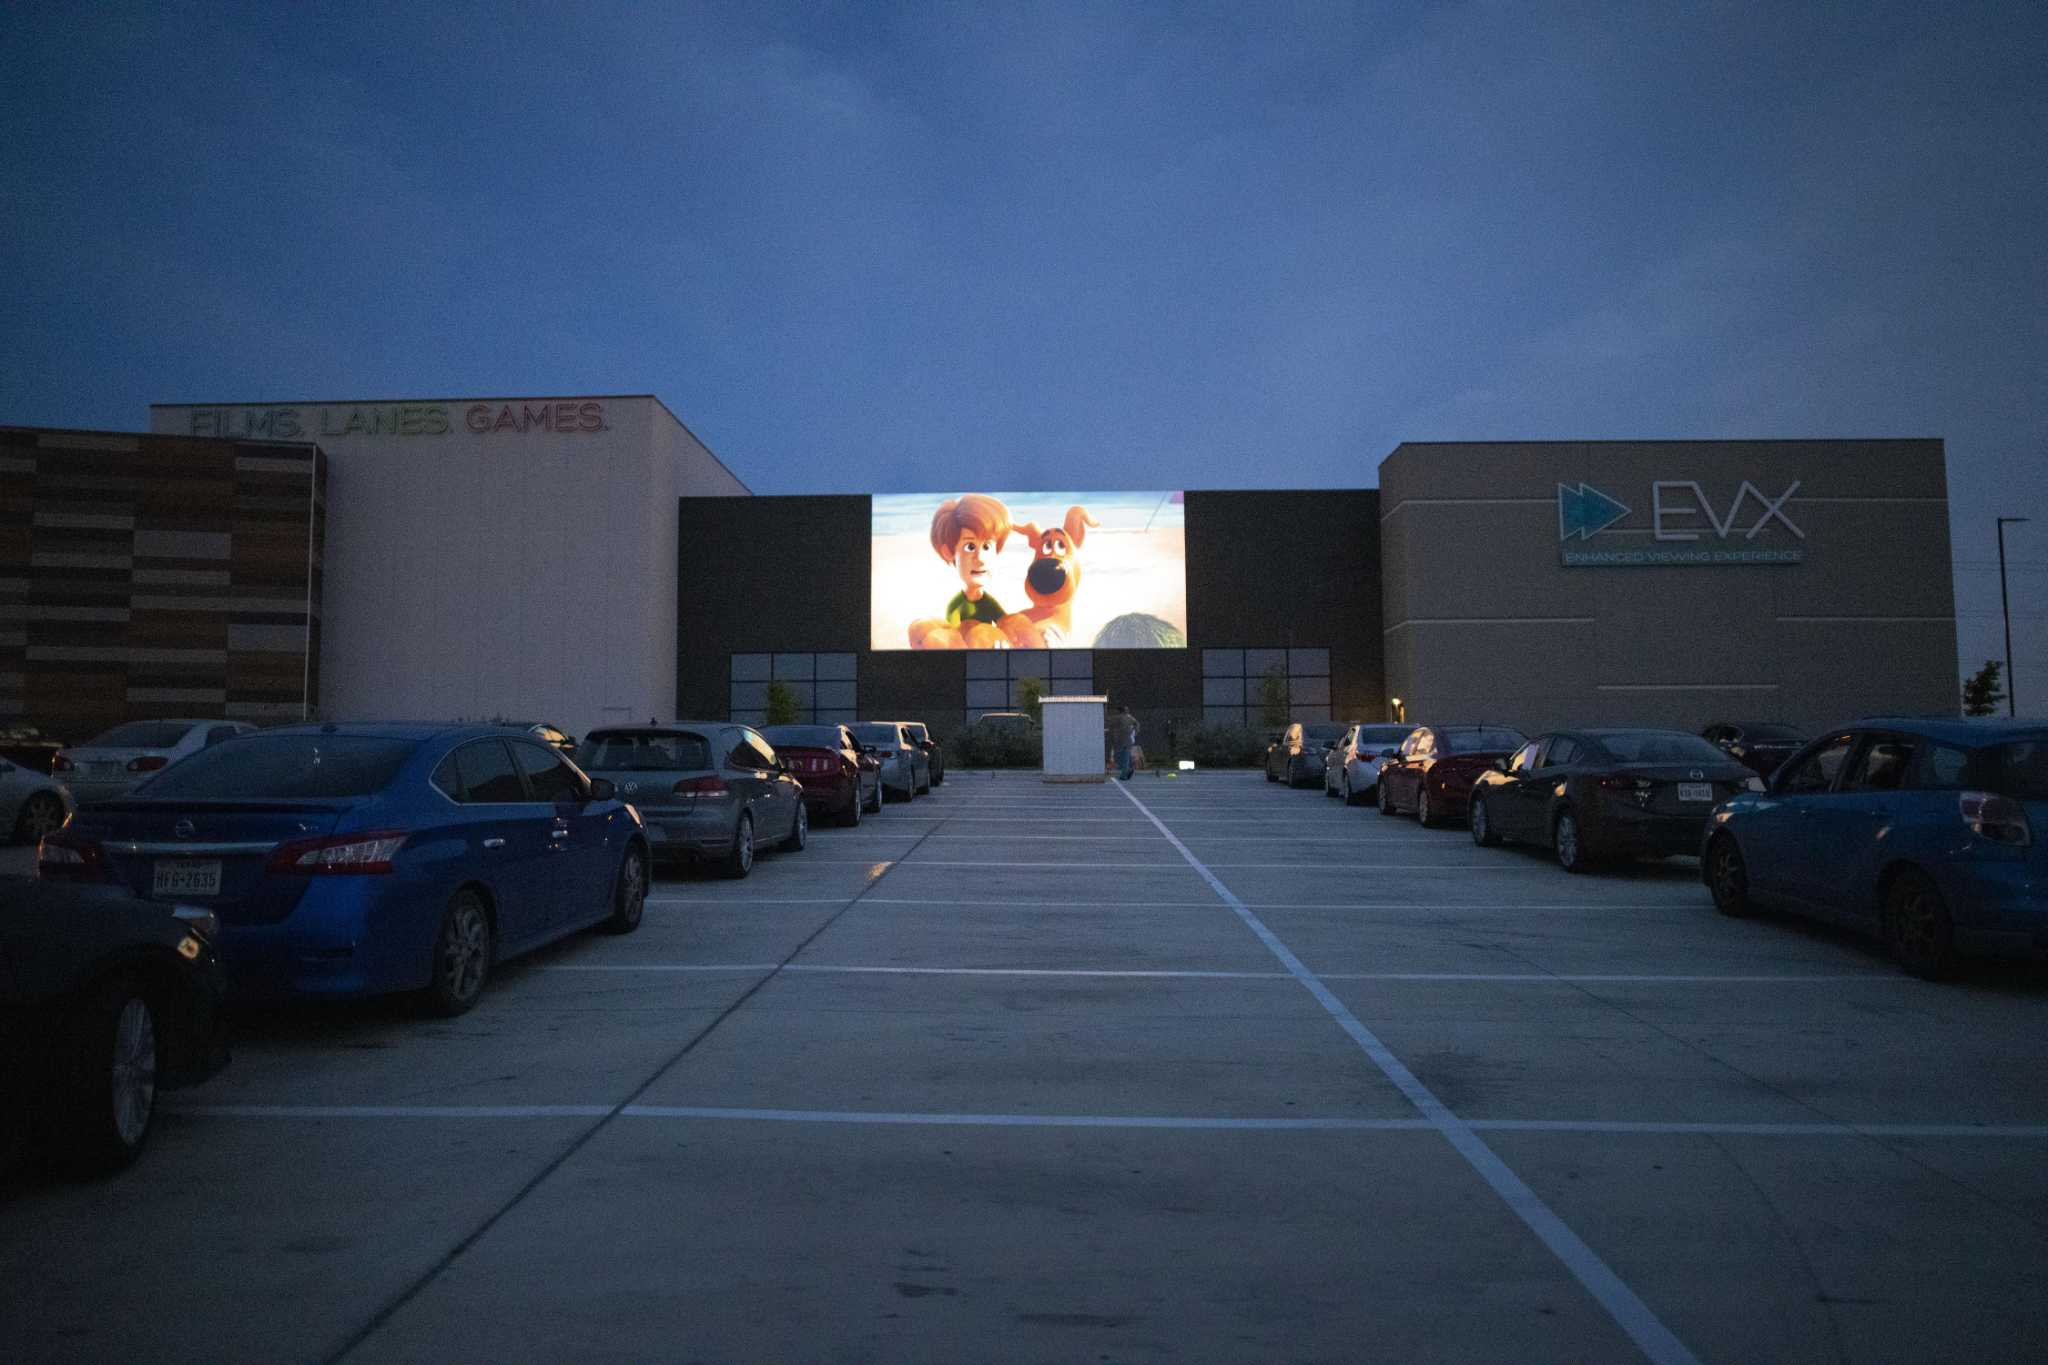 Evo Entertainment Shuts Down Drive In Movie Theatre To Comply With Stay At Home Orders San Antonio Express News